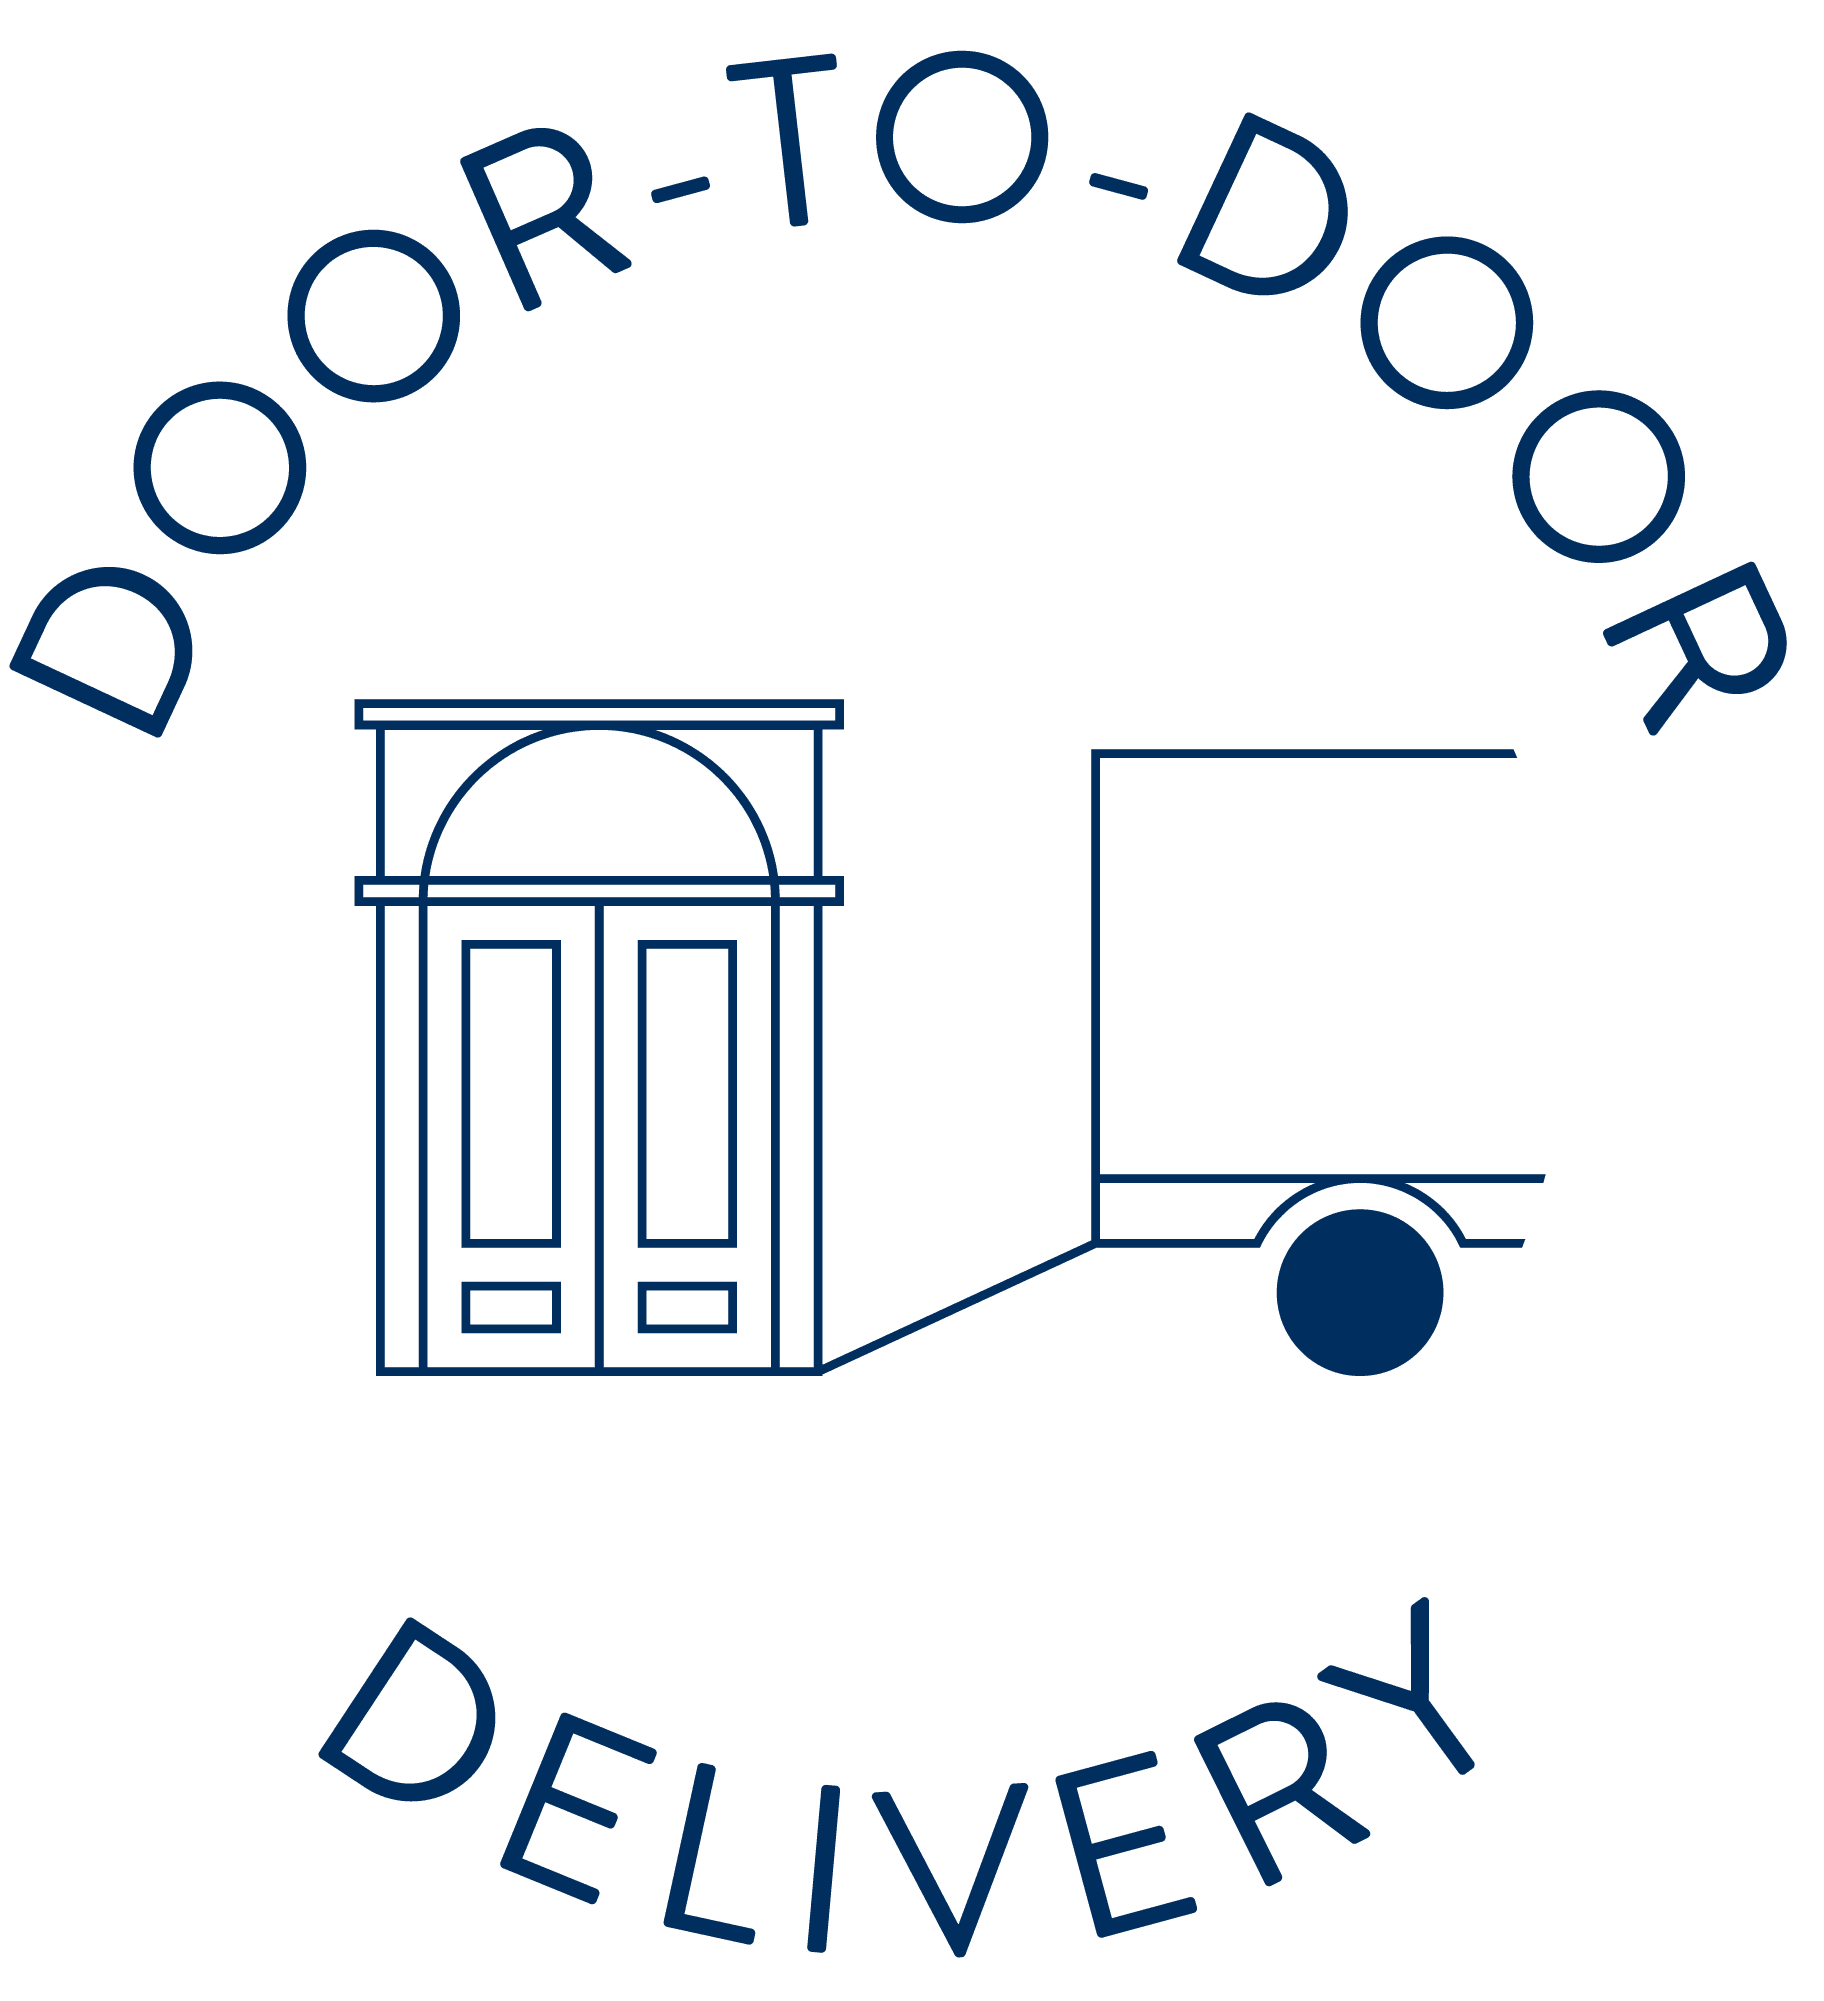 Delivery_NAVY-e1583313562738